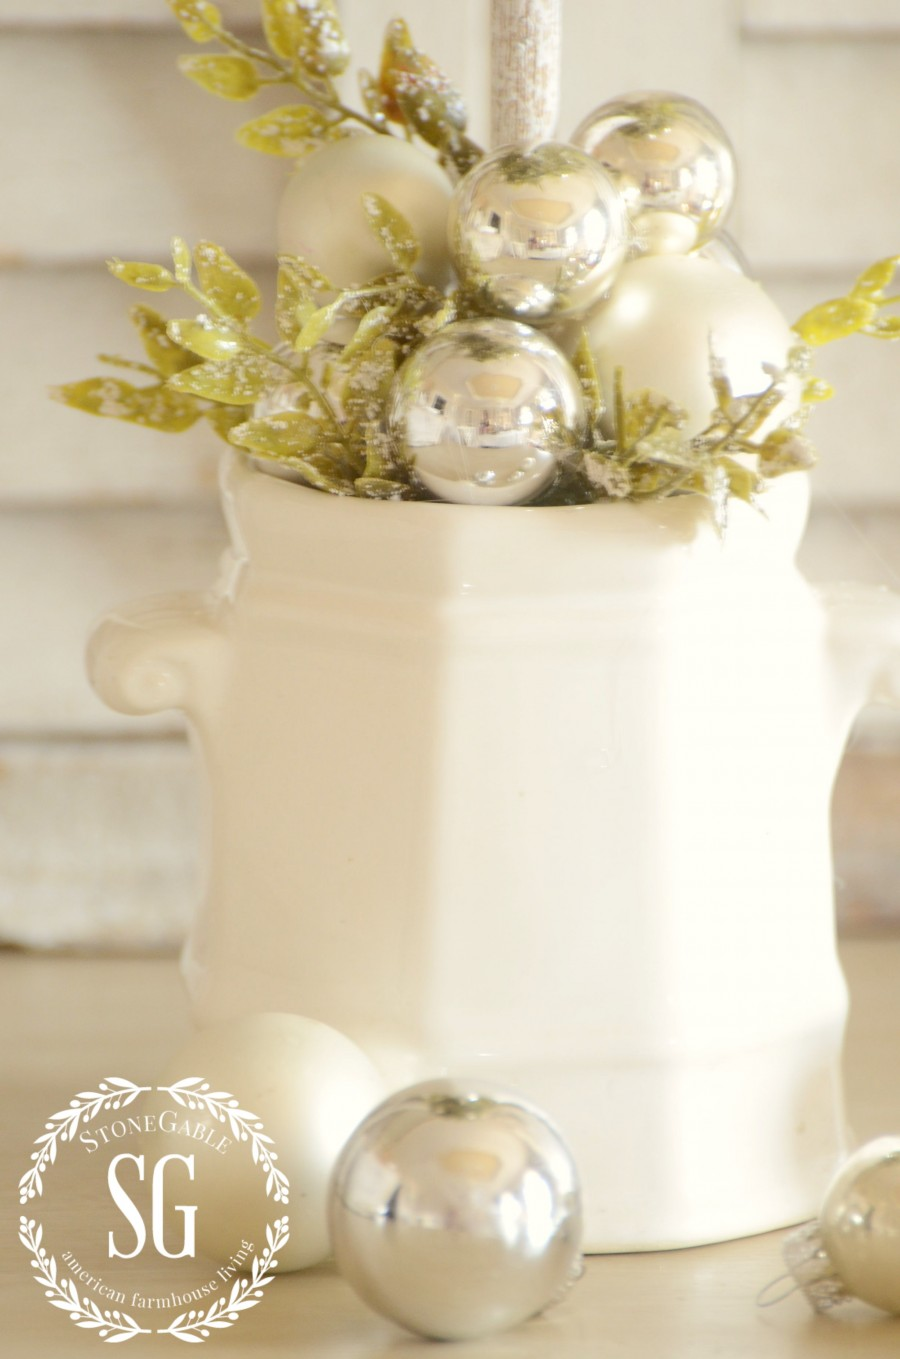 CHRISTMAS TOPIARY DIY-sugar bowl base-stonegableblog.com